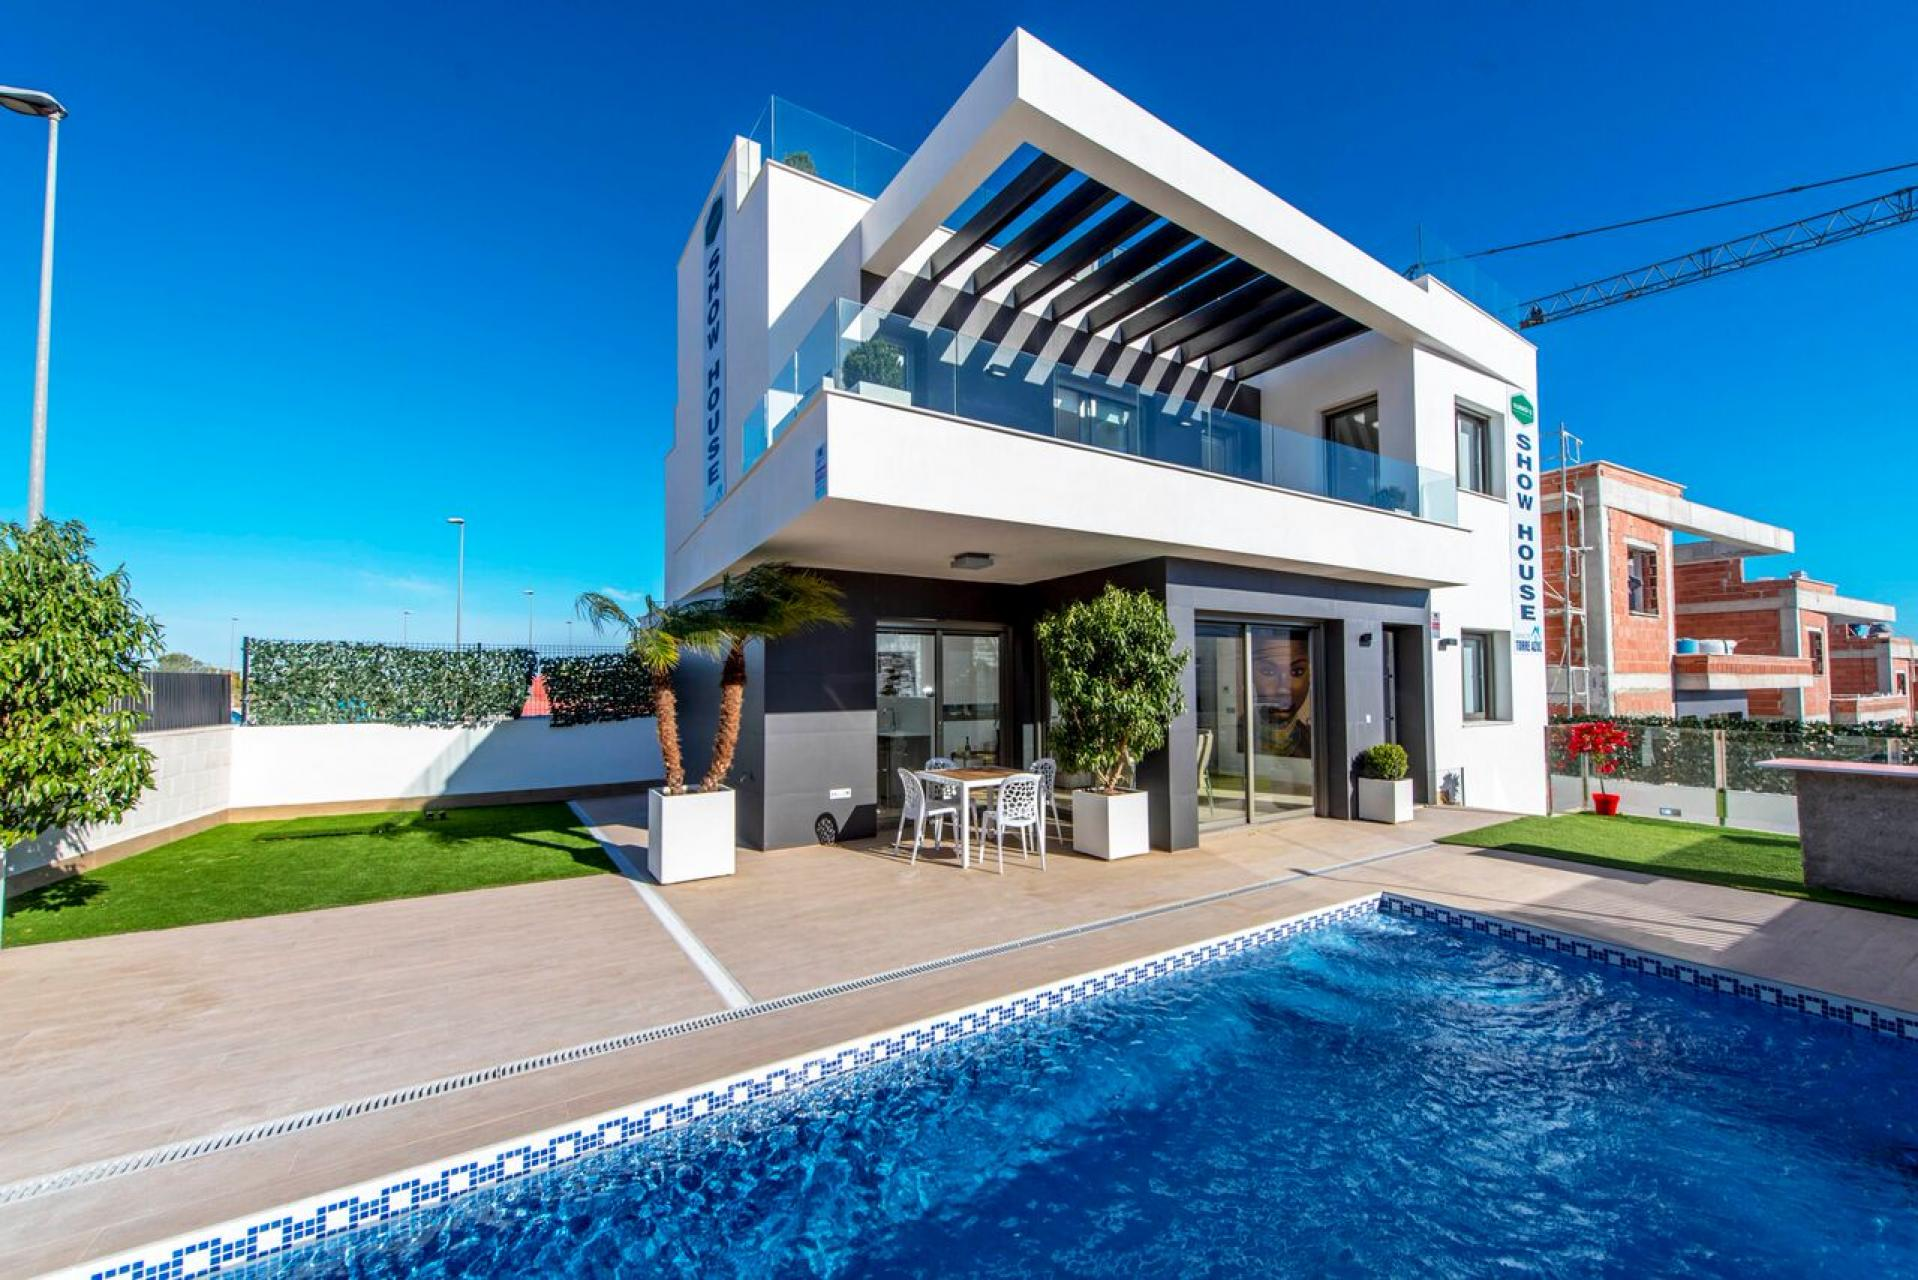 New build - modern detached villa - Villamartin - Rentablanca